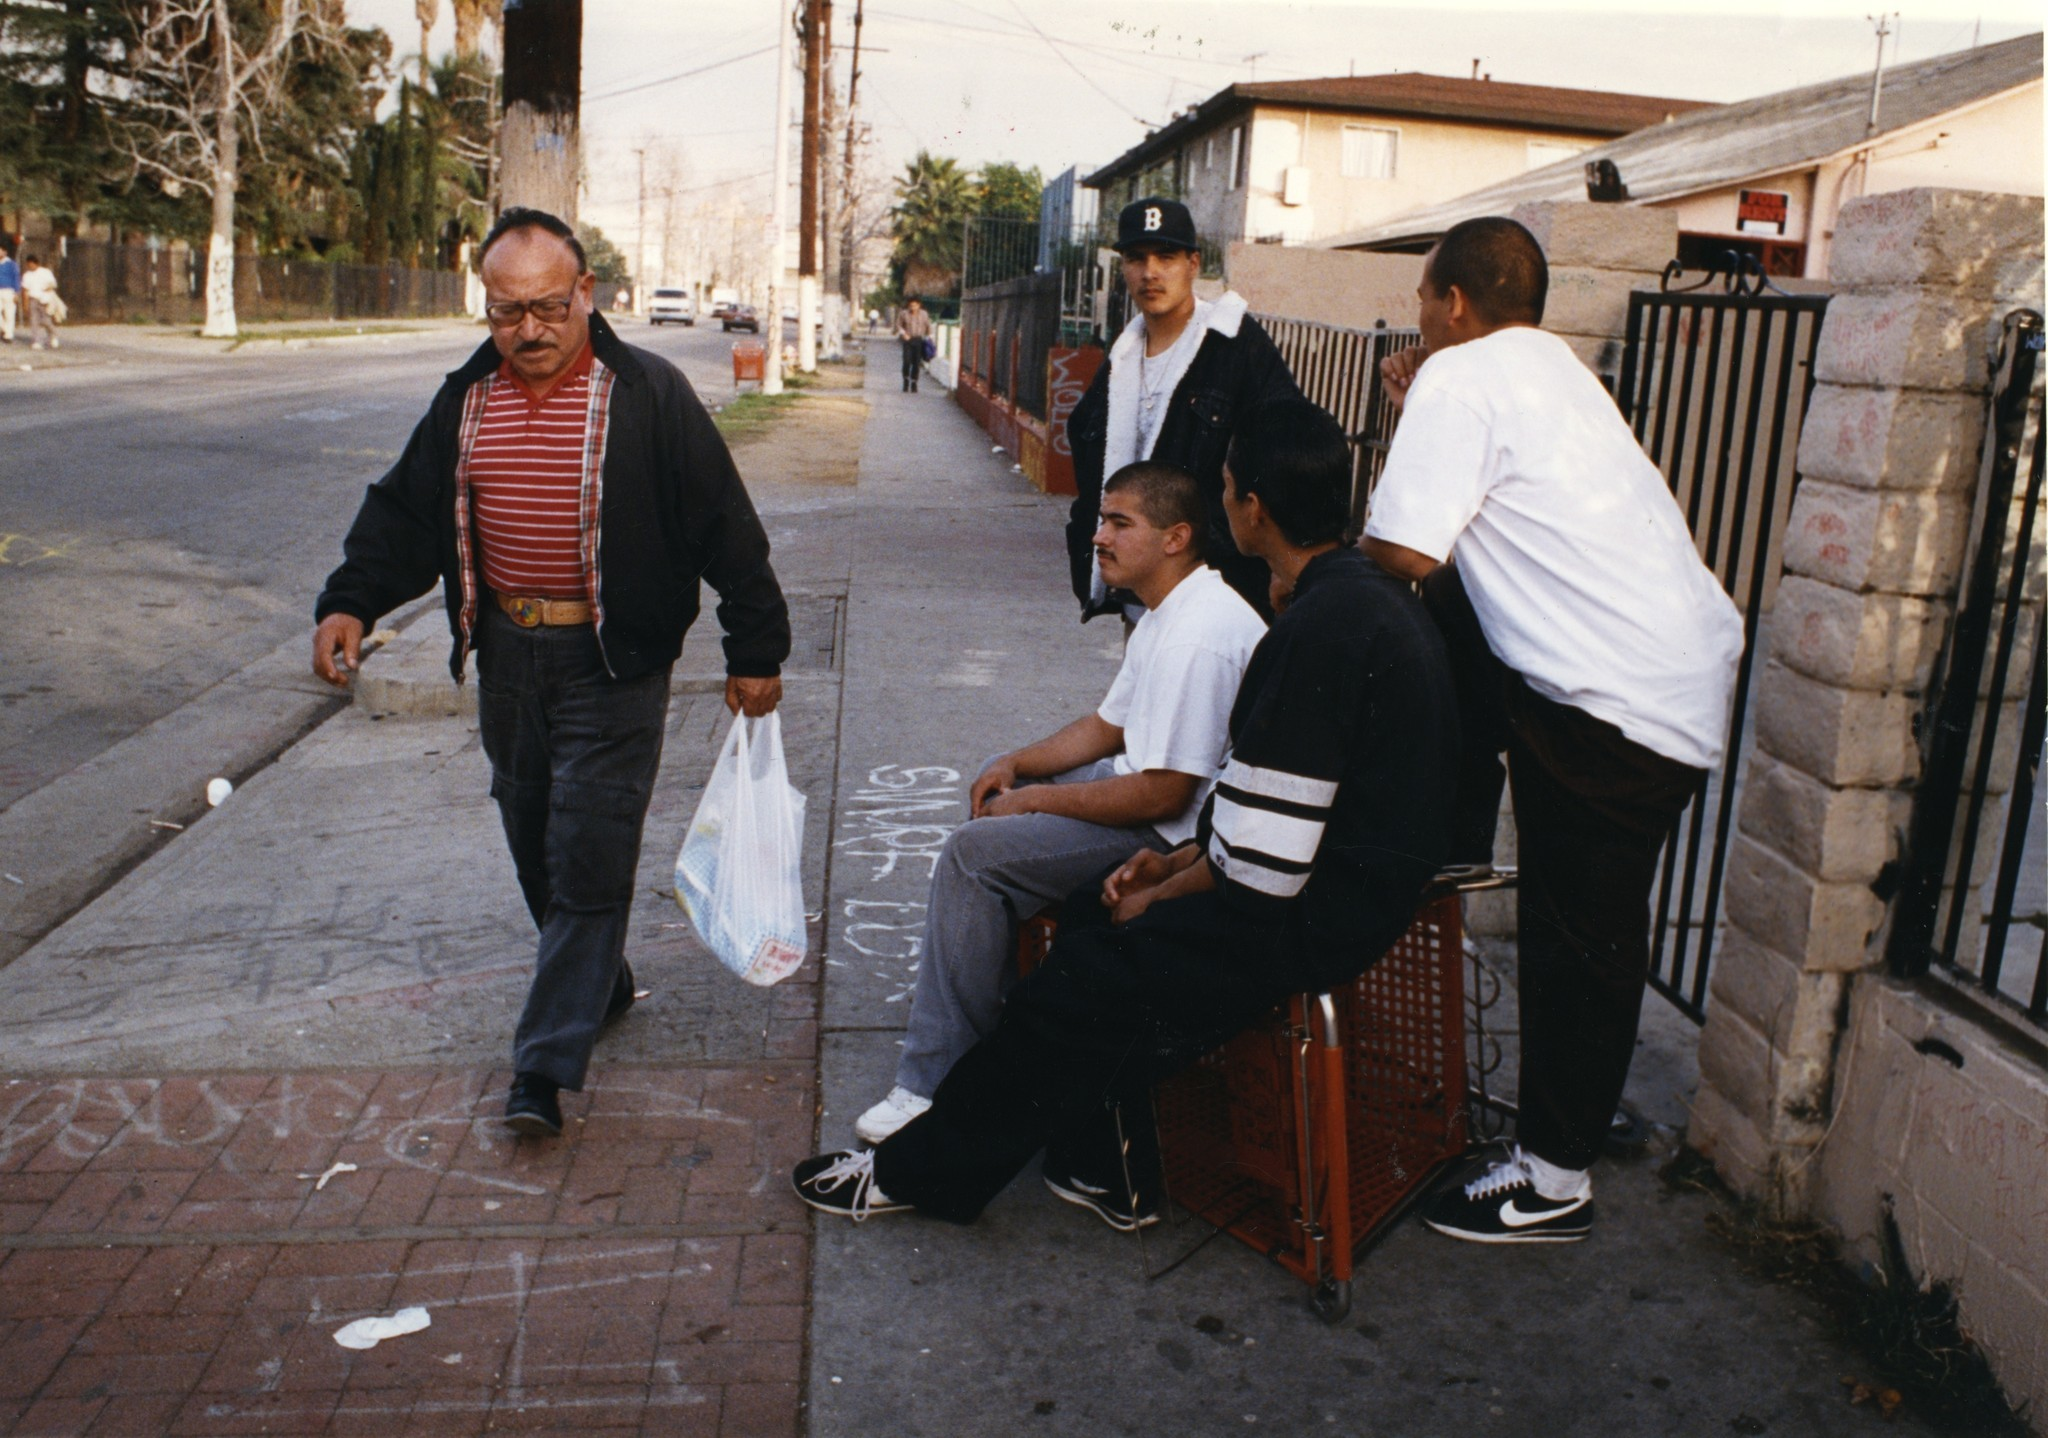 a history of crimes and gangs in los angeles in 1960 1980s 29, 1980, lasted 19 days, and the subsequent murder of james a  after  becoming mob boss in the 1960s, he toned down his wardrobe, lest he draw  more attention from fbi snoops  giordano was convicted in the california  robbery  on april 2, 1985, of racketeering and other offenses in the gang war.